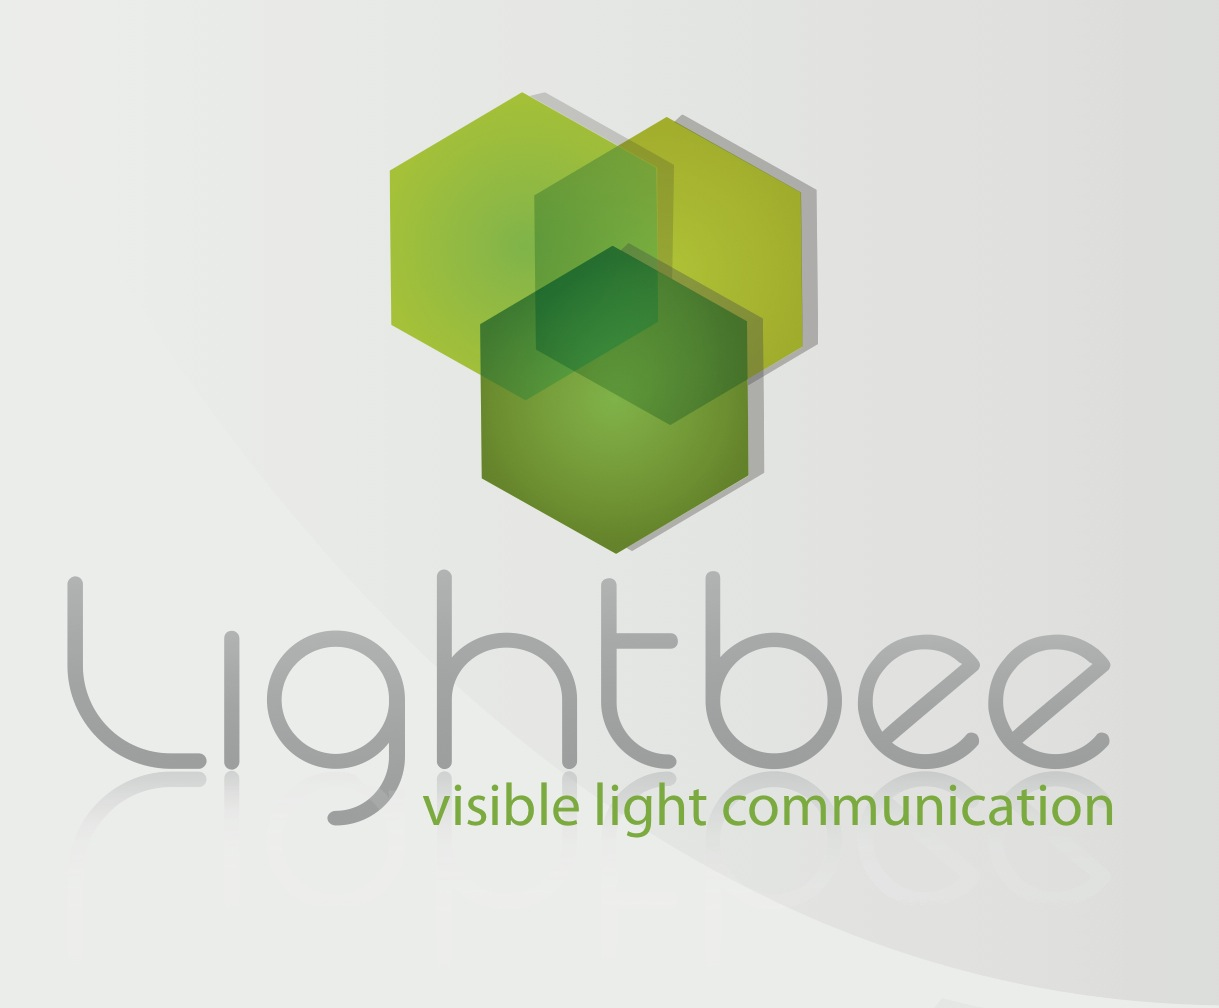 Lightbee Mobility, S.L.